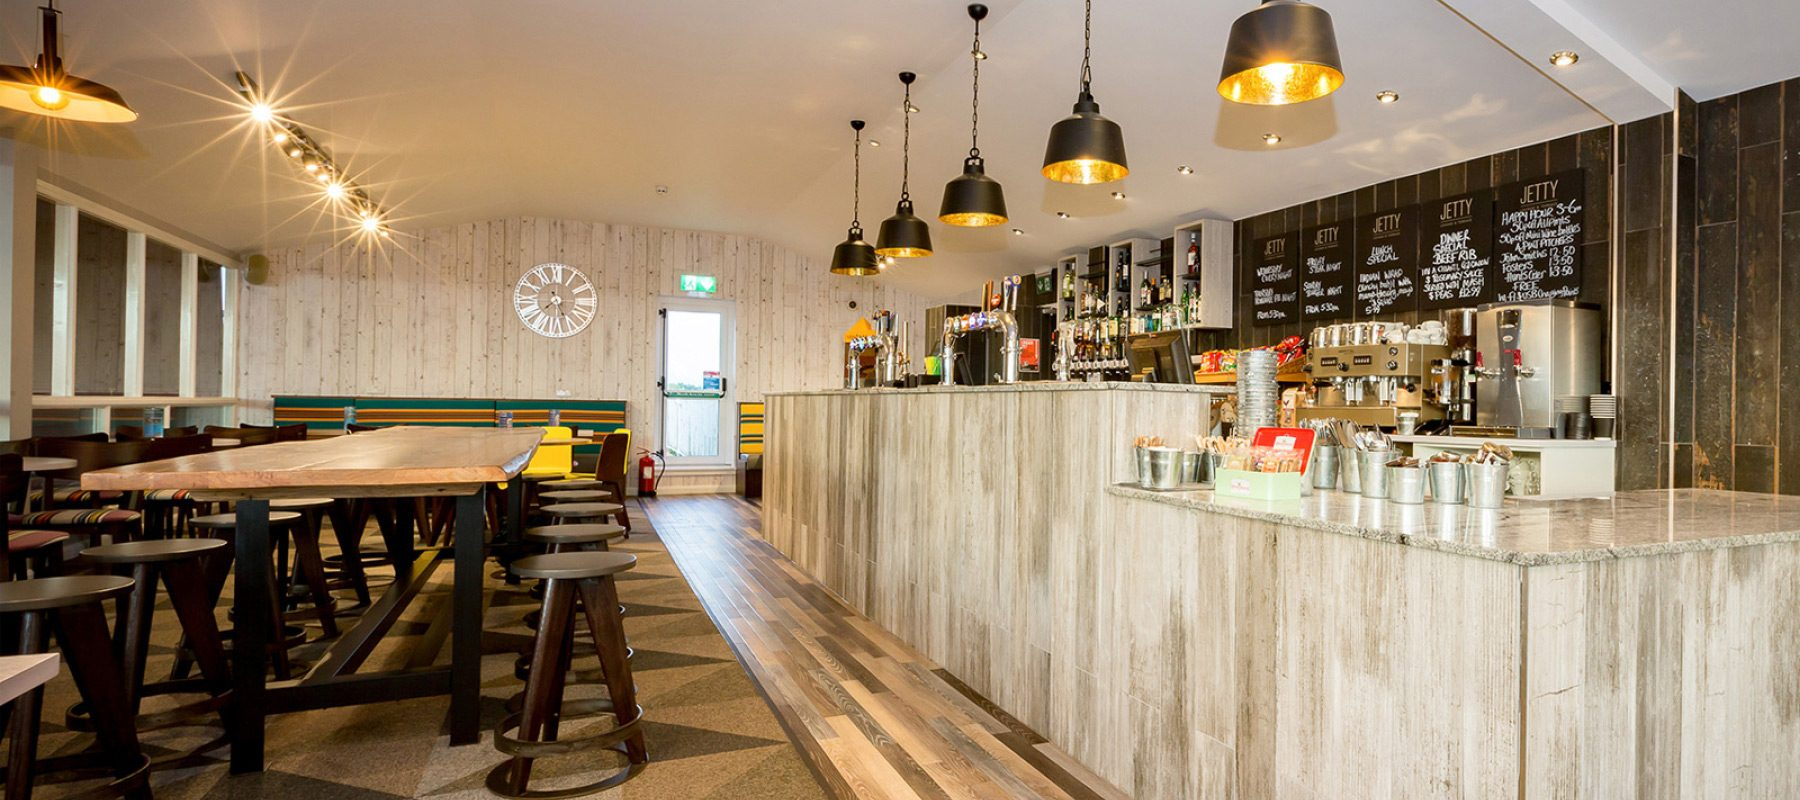 refit refurbishment restaurant interior design